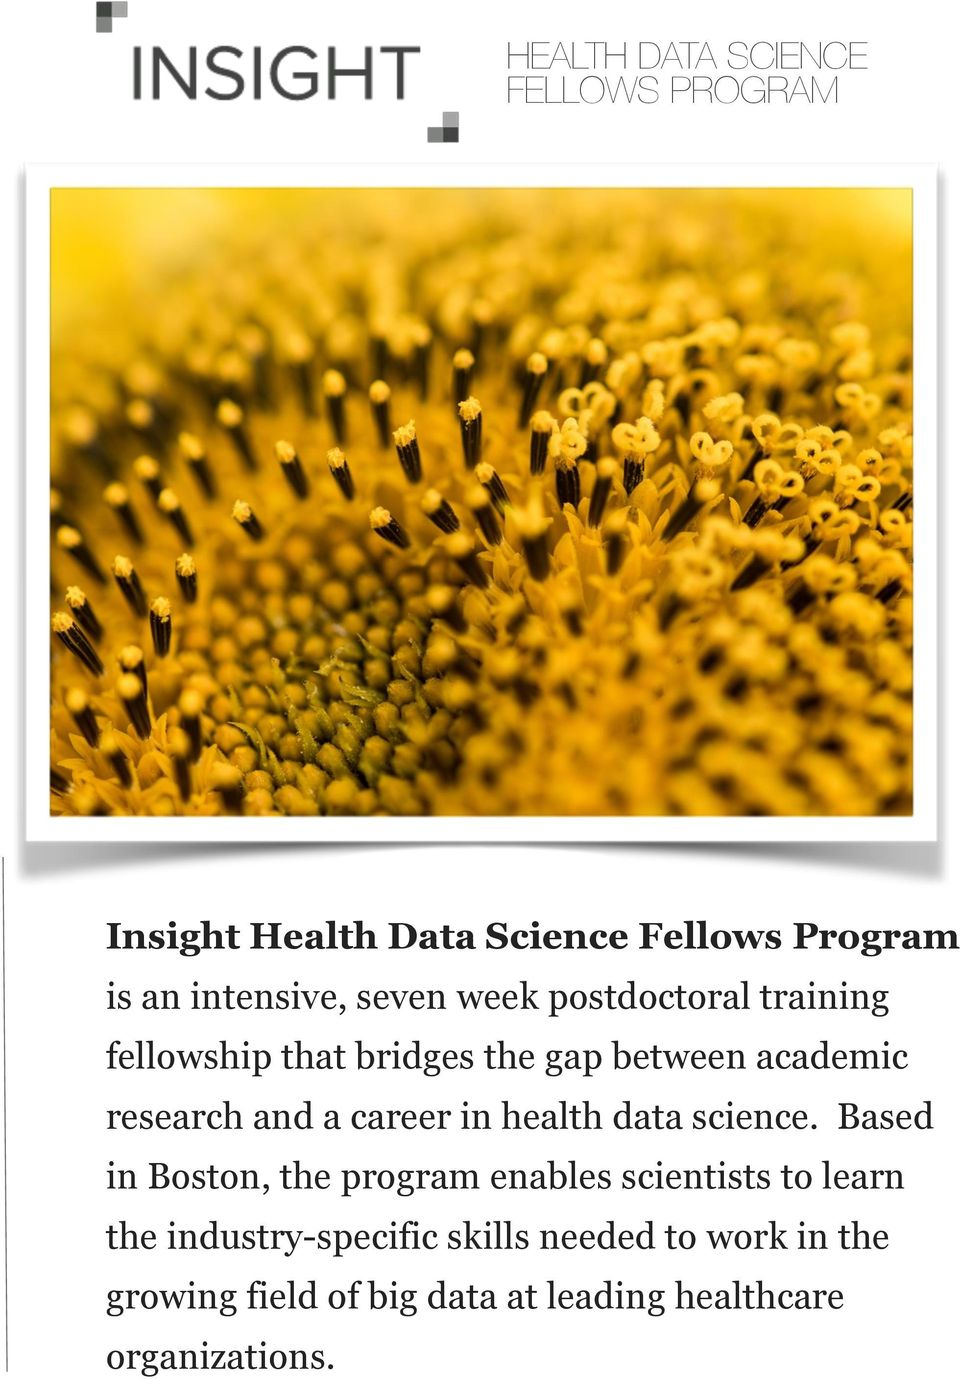 career in health data science.